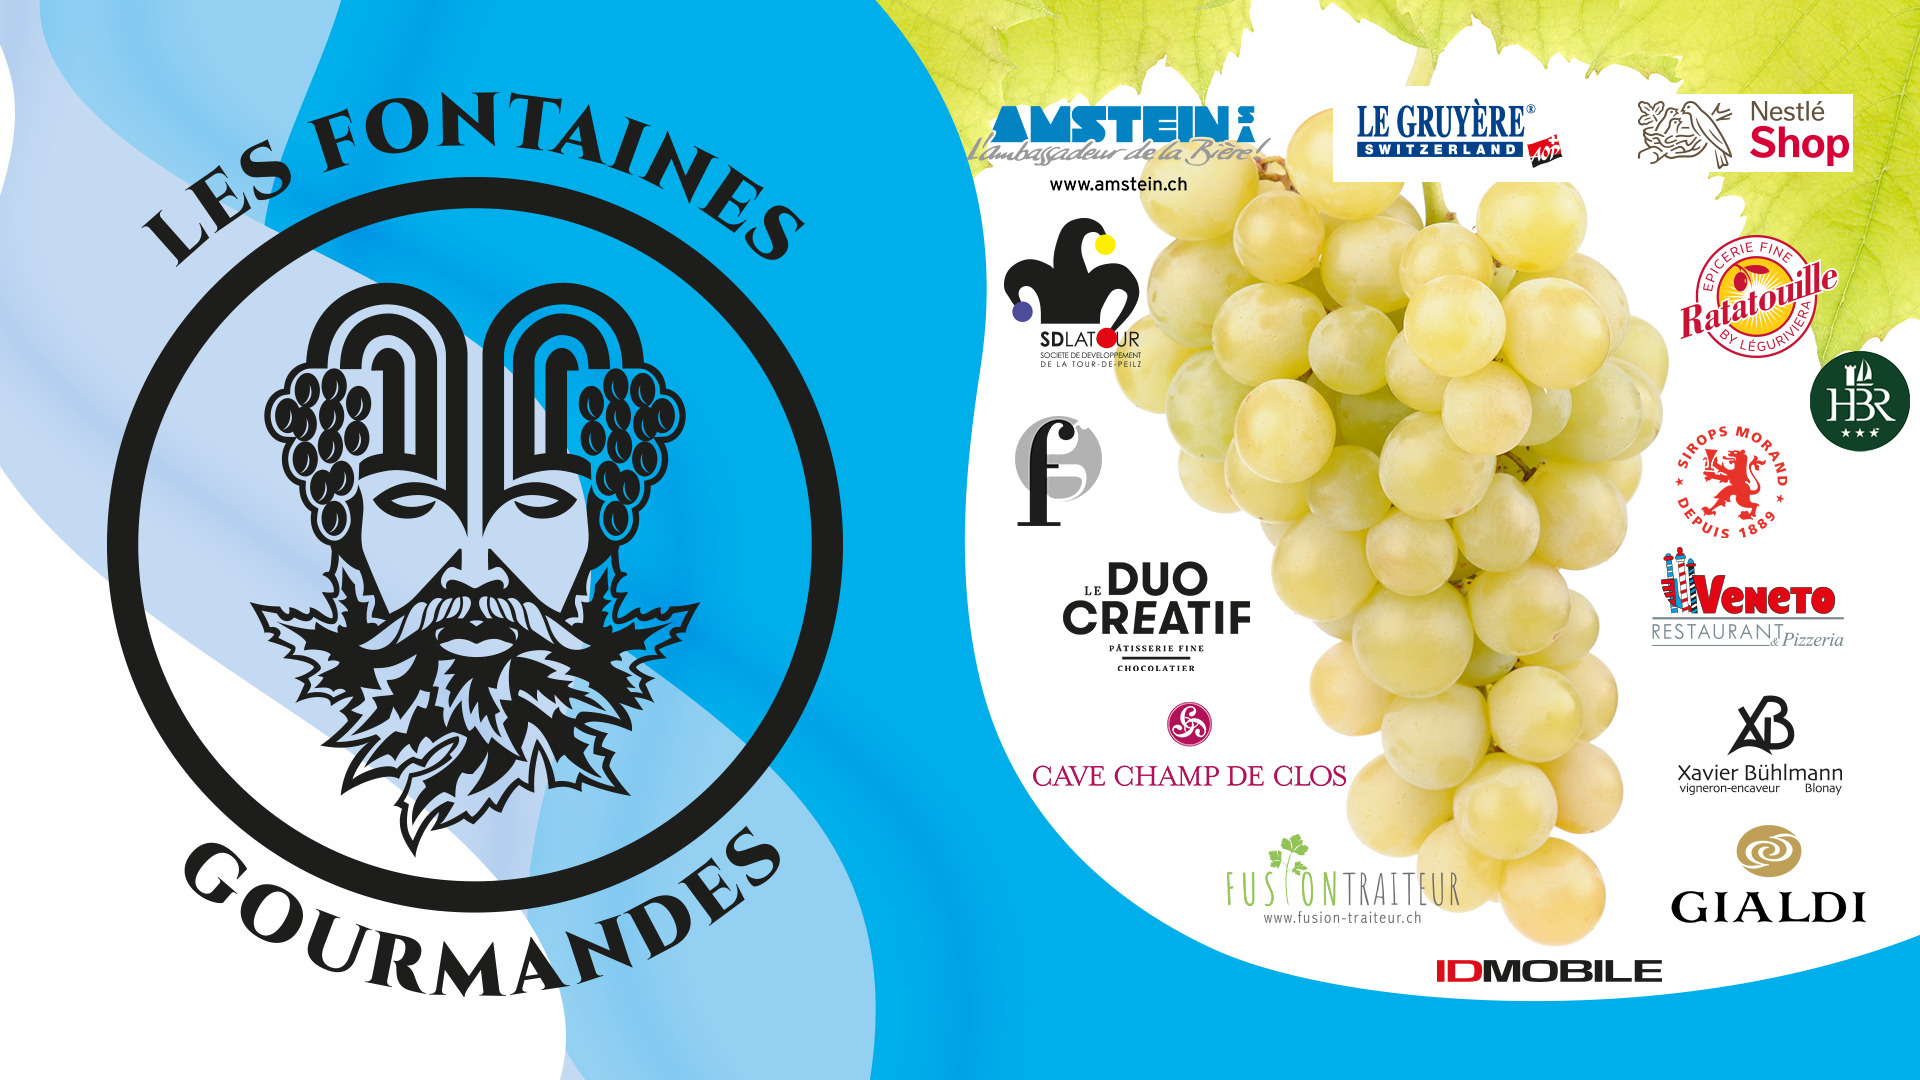 Fontaines Gourmandes